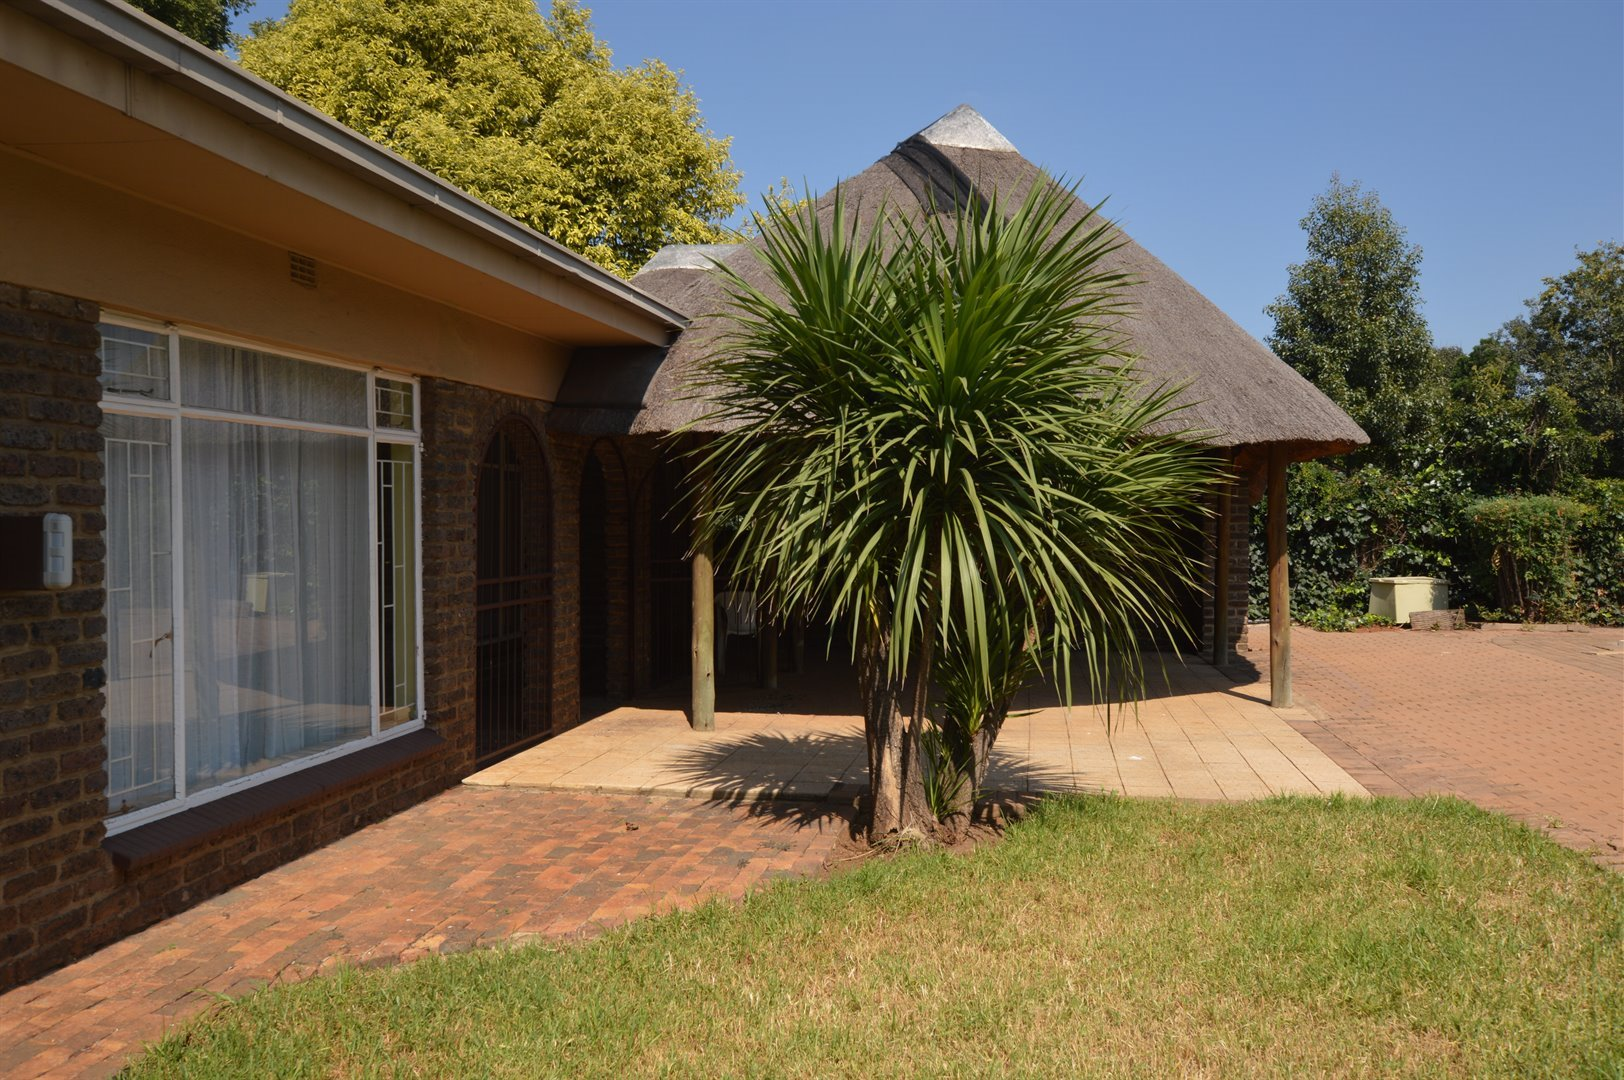 Vanderbijlpark Se 2 property for sale. Ref No: 13623209. Picture no 33